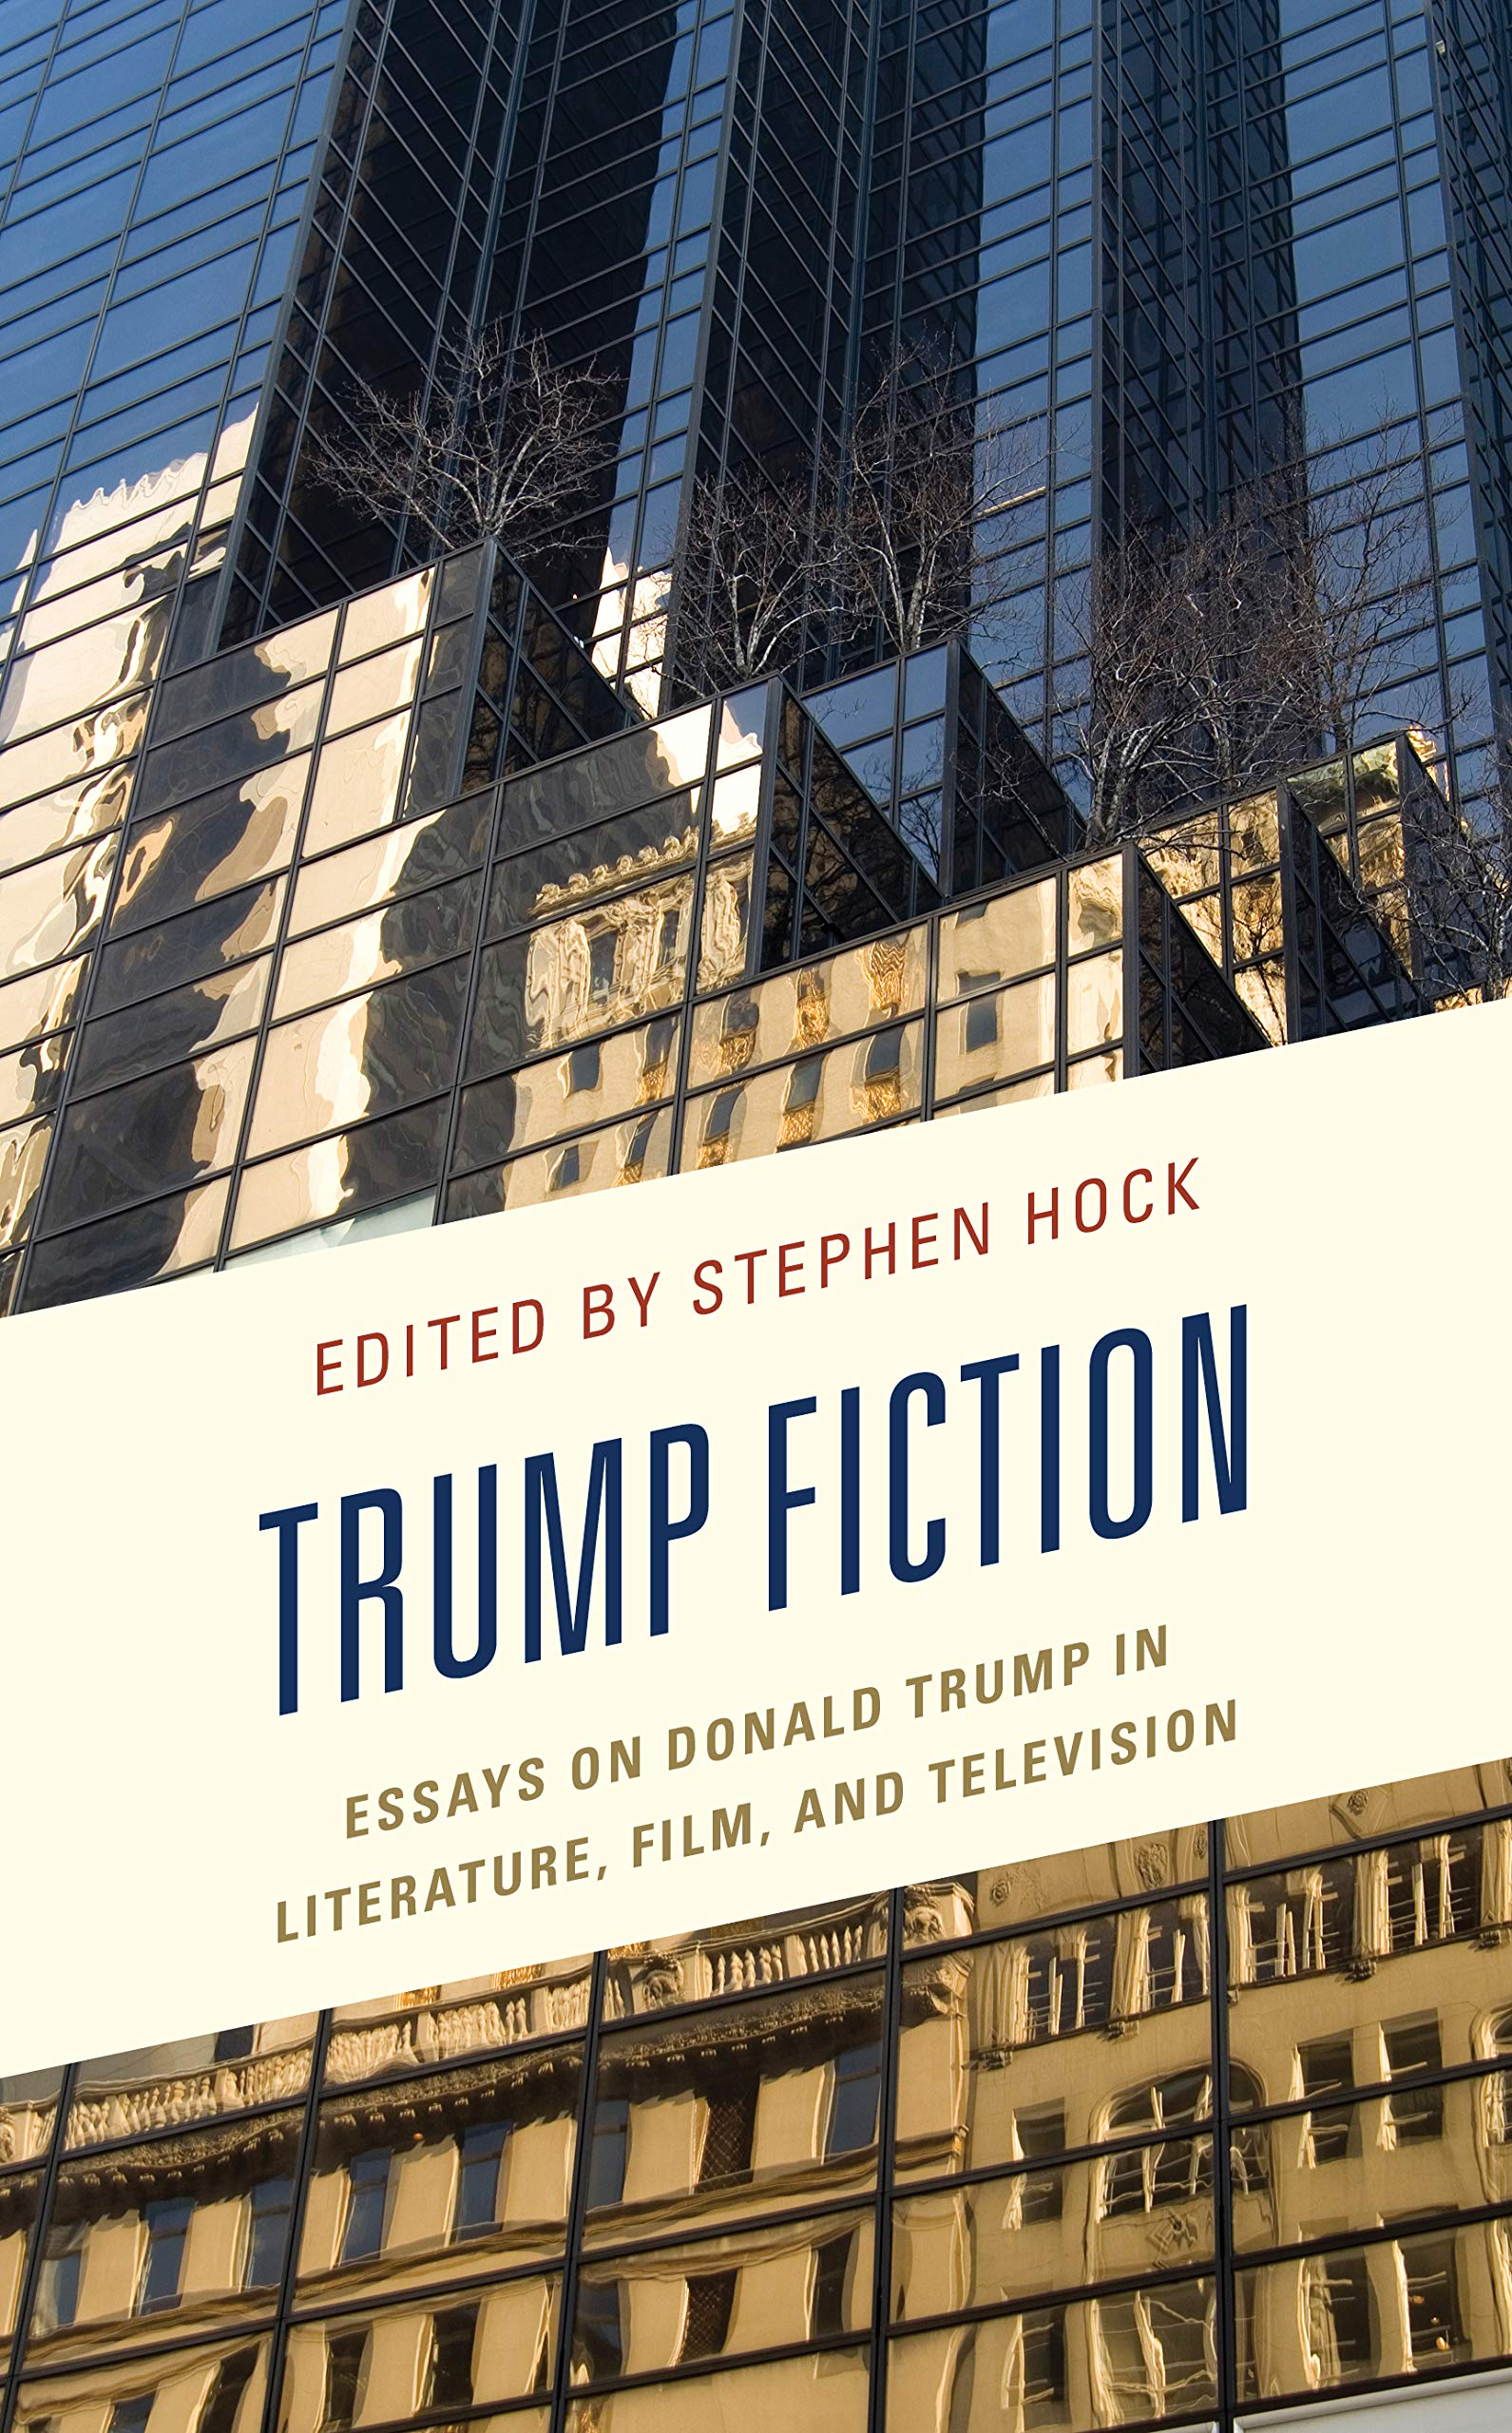 Trump Fiction Cover